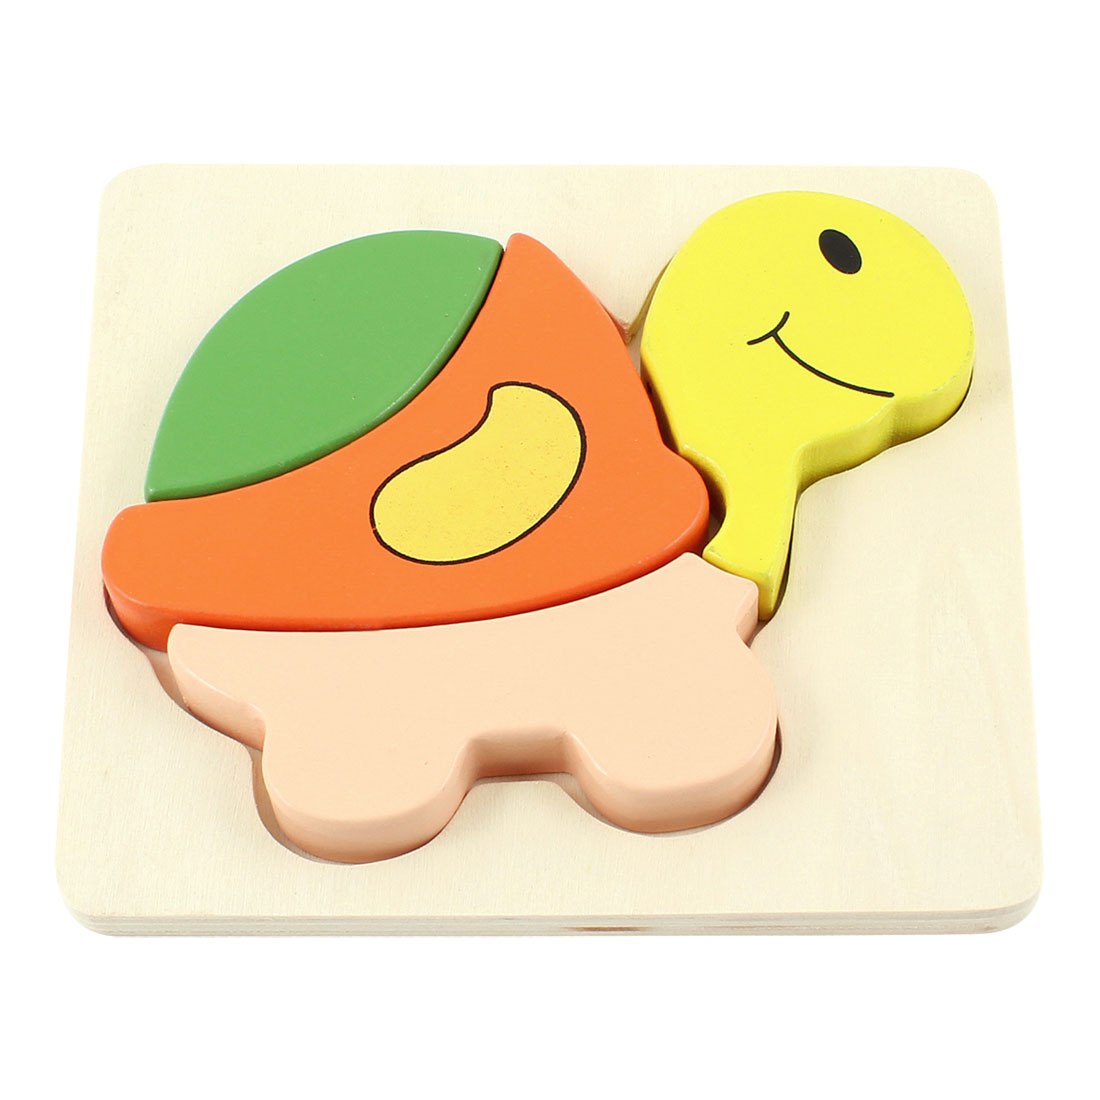 Colored Tortoise Model Woodcraft Construction Kits Toy